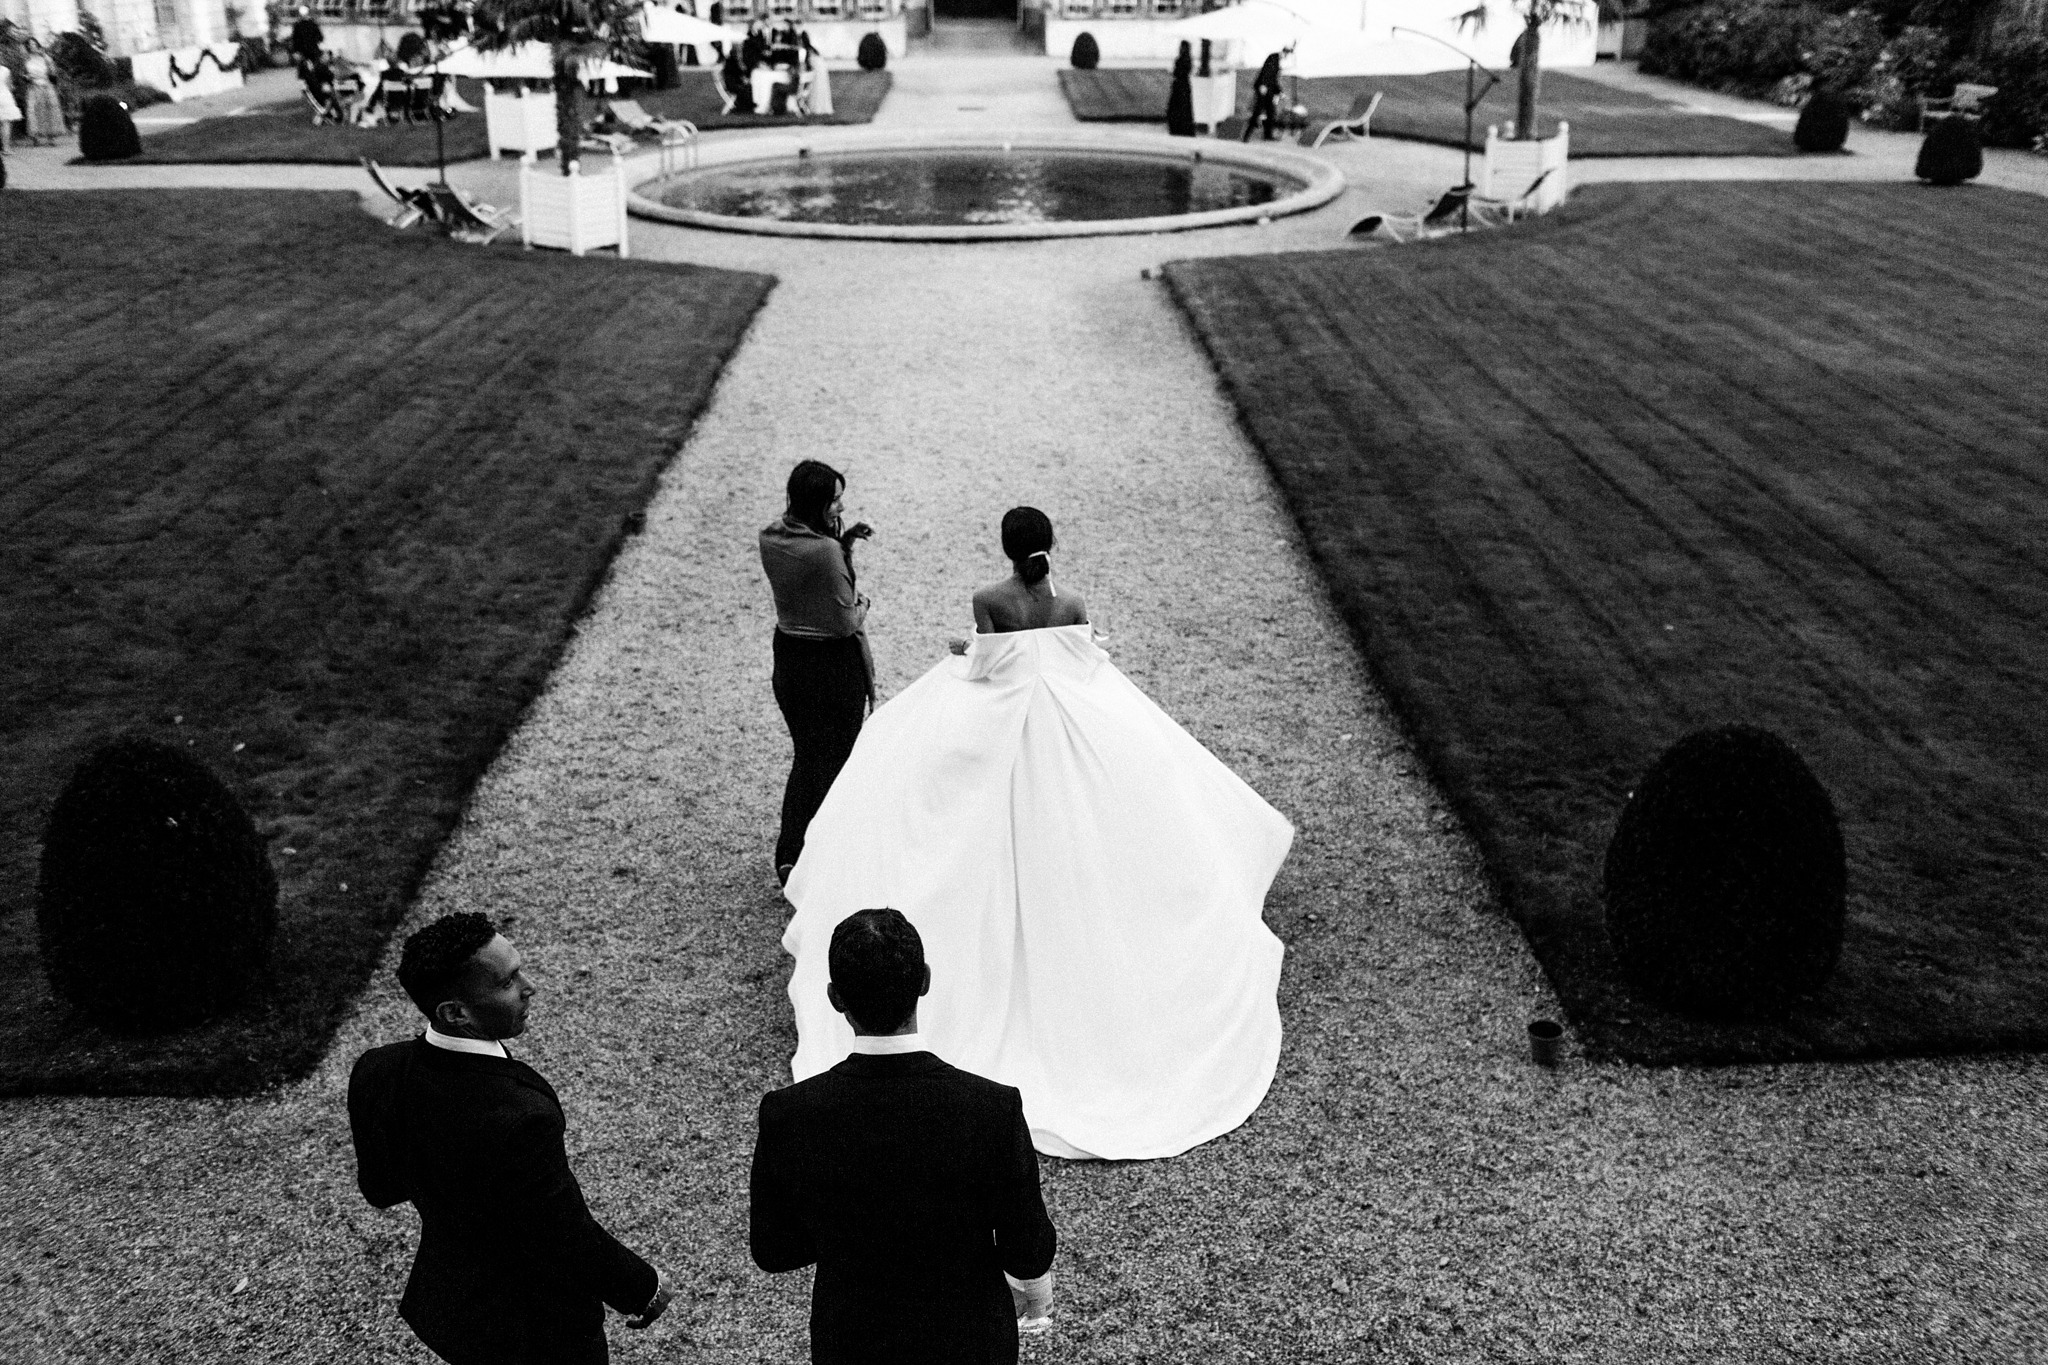 chateau-wedding-france-chanel-eric-as-seen-on-vogue-with-sarah-falugo-photographer_0122